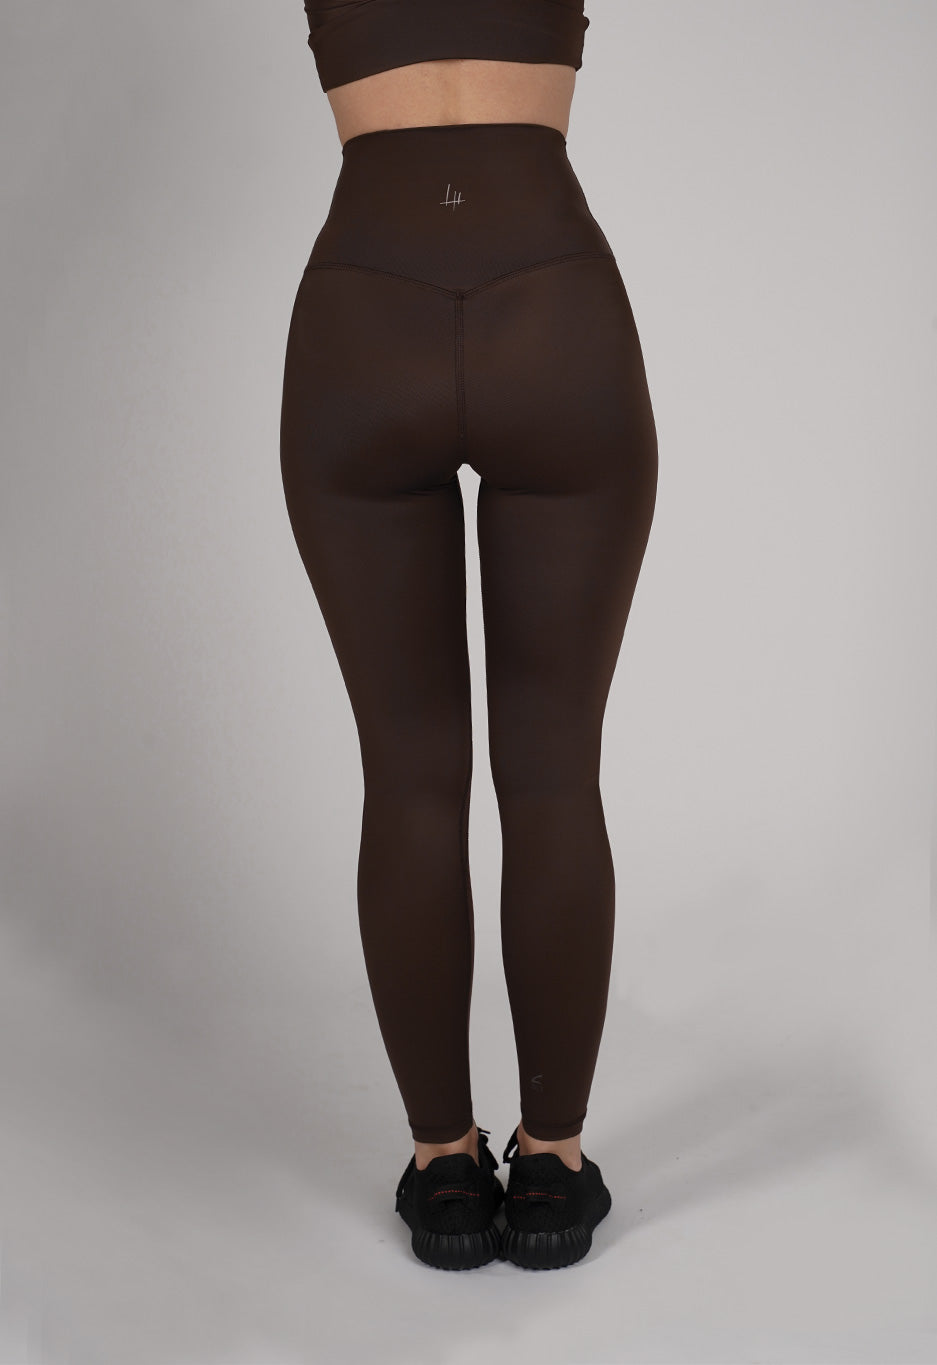 OCTOBER Leggings - LH x COHL'S